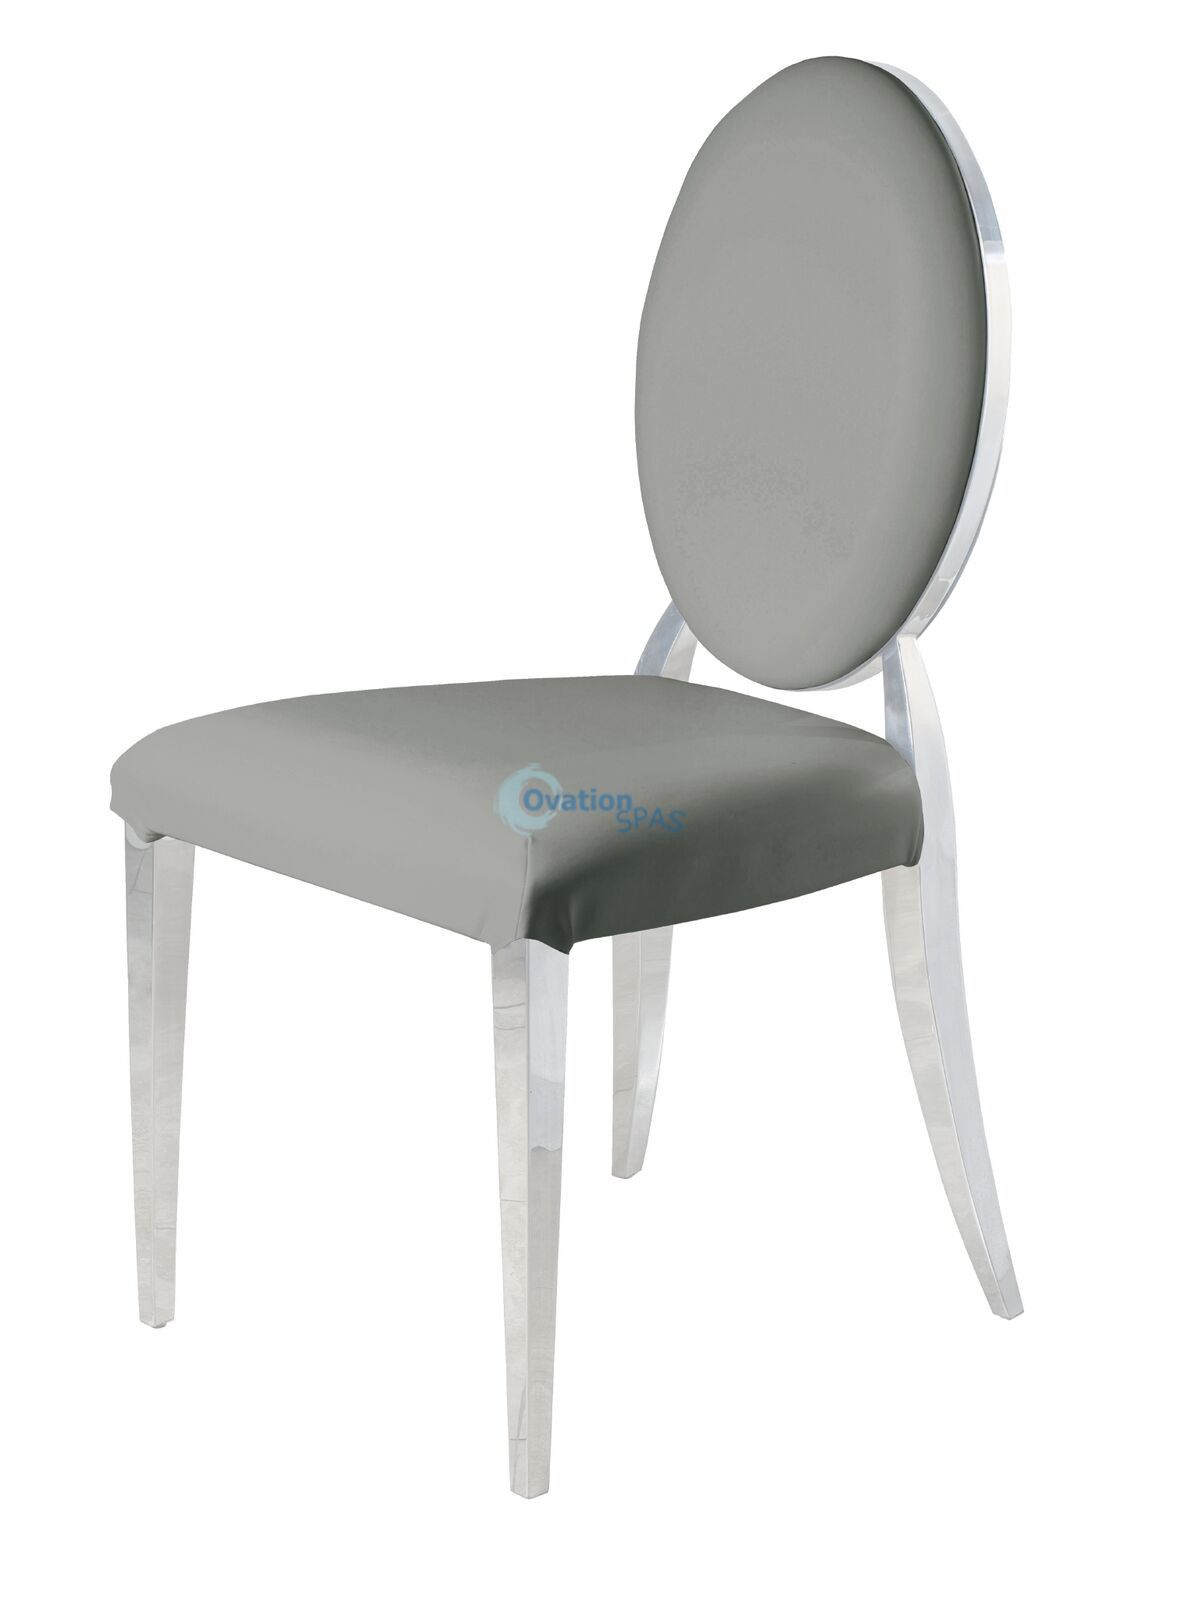 Waiting Chair 8030 - Grey